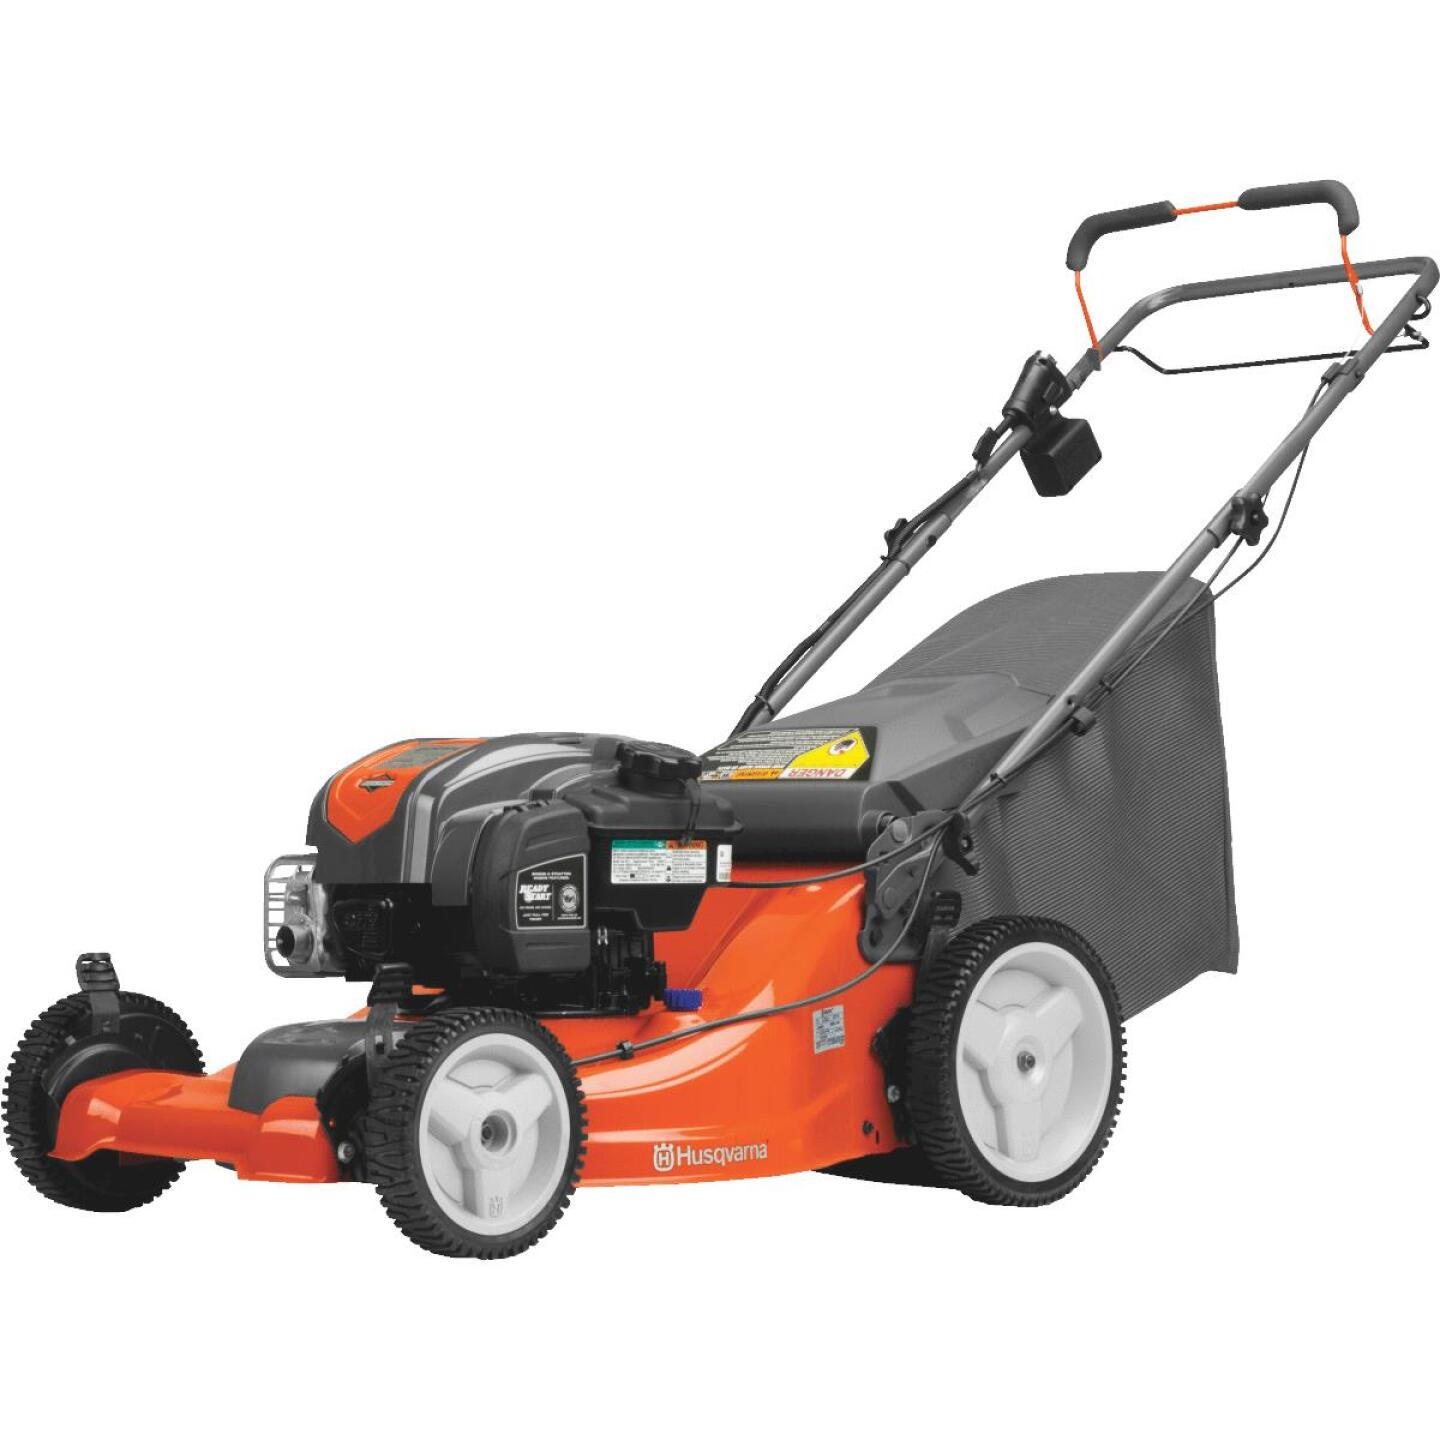 Husqvarna LC221FHE 21 In. 163cc 3-In-1 Self-Propelled Gas Lawn Mower Image 4